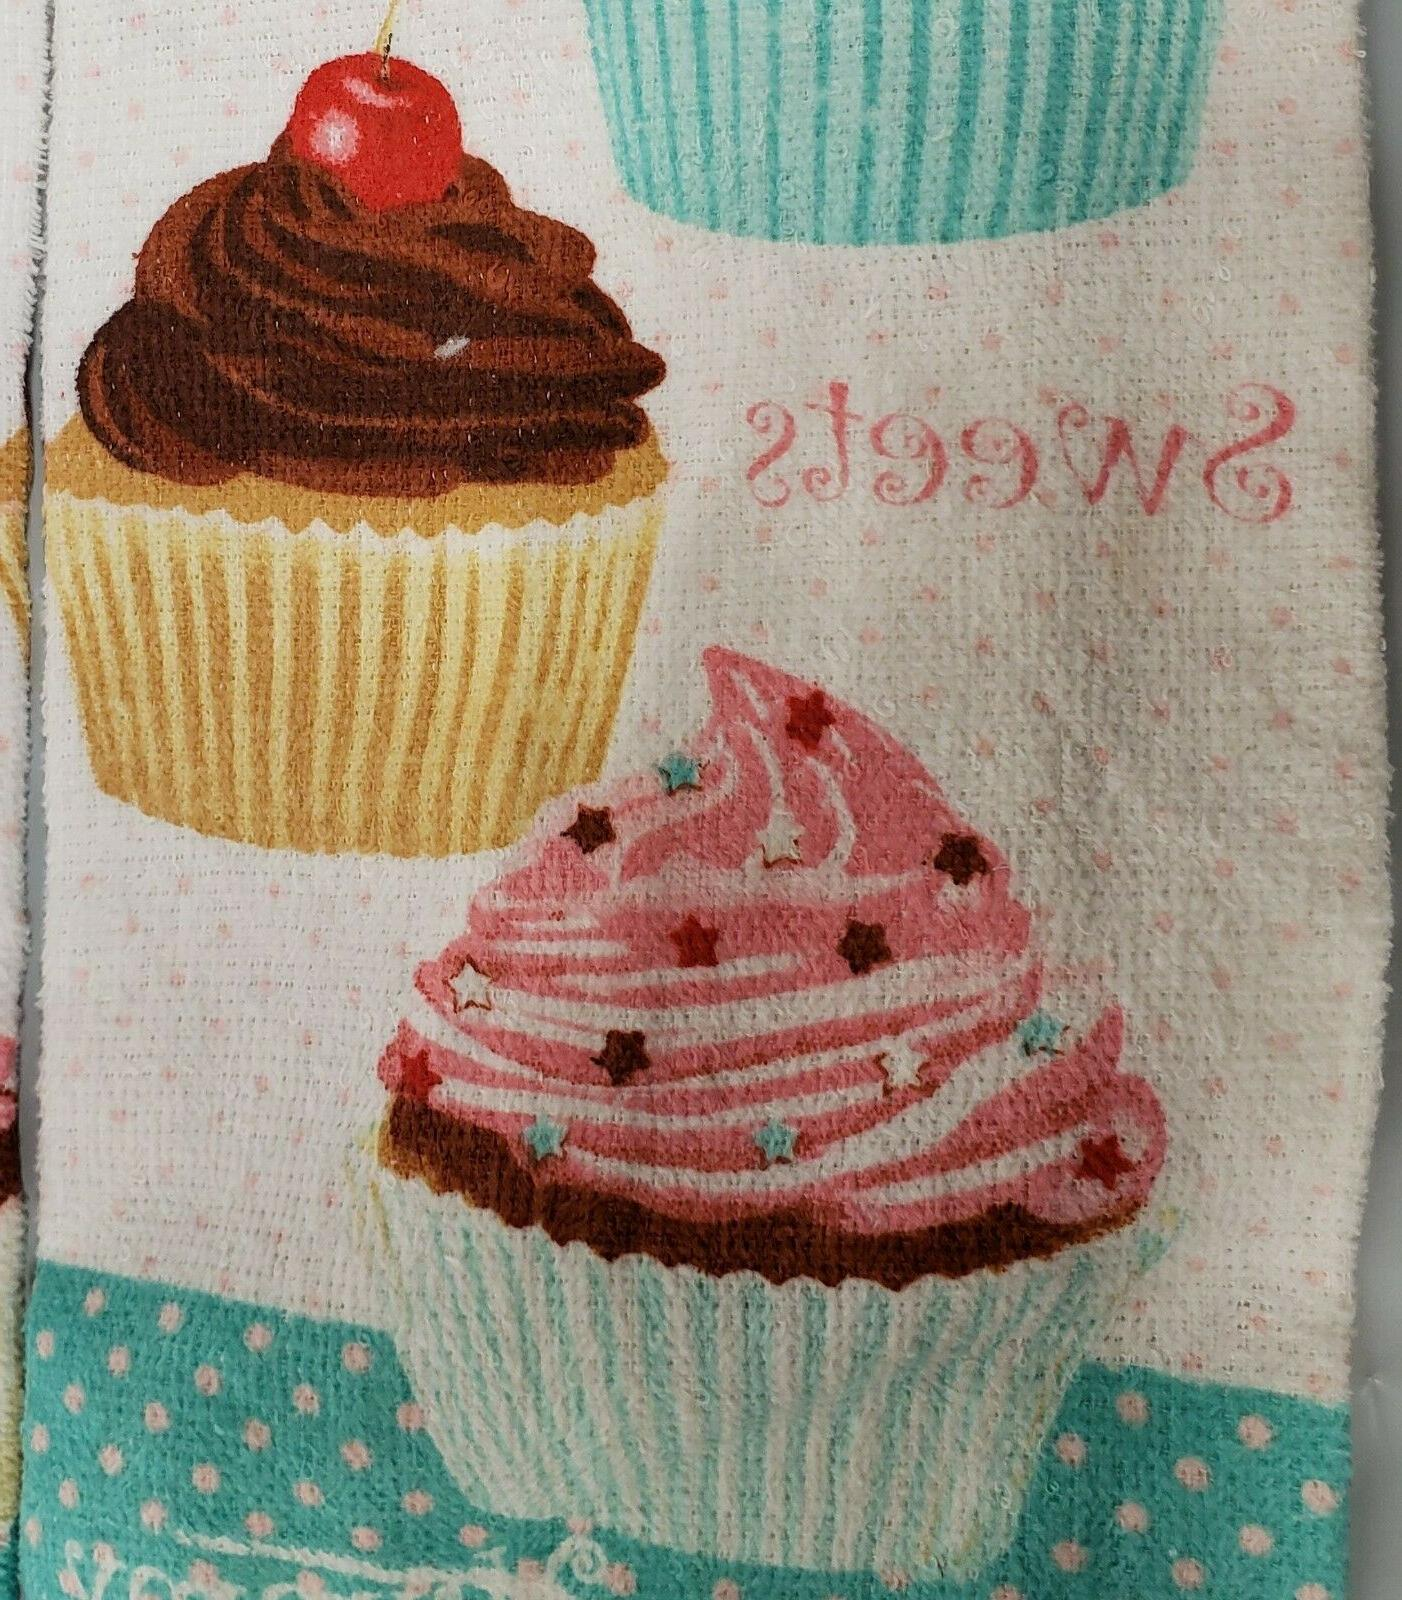 2 PRINTED TOWELS BUNCH OF CUPCAKES,